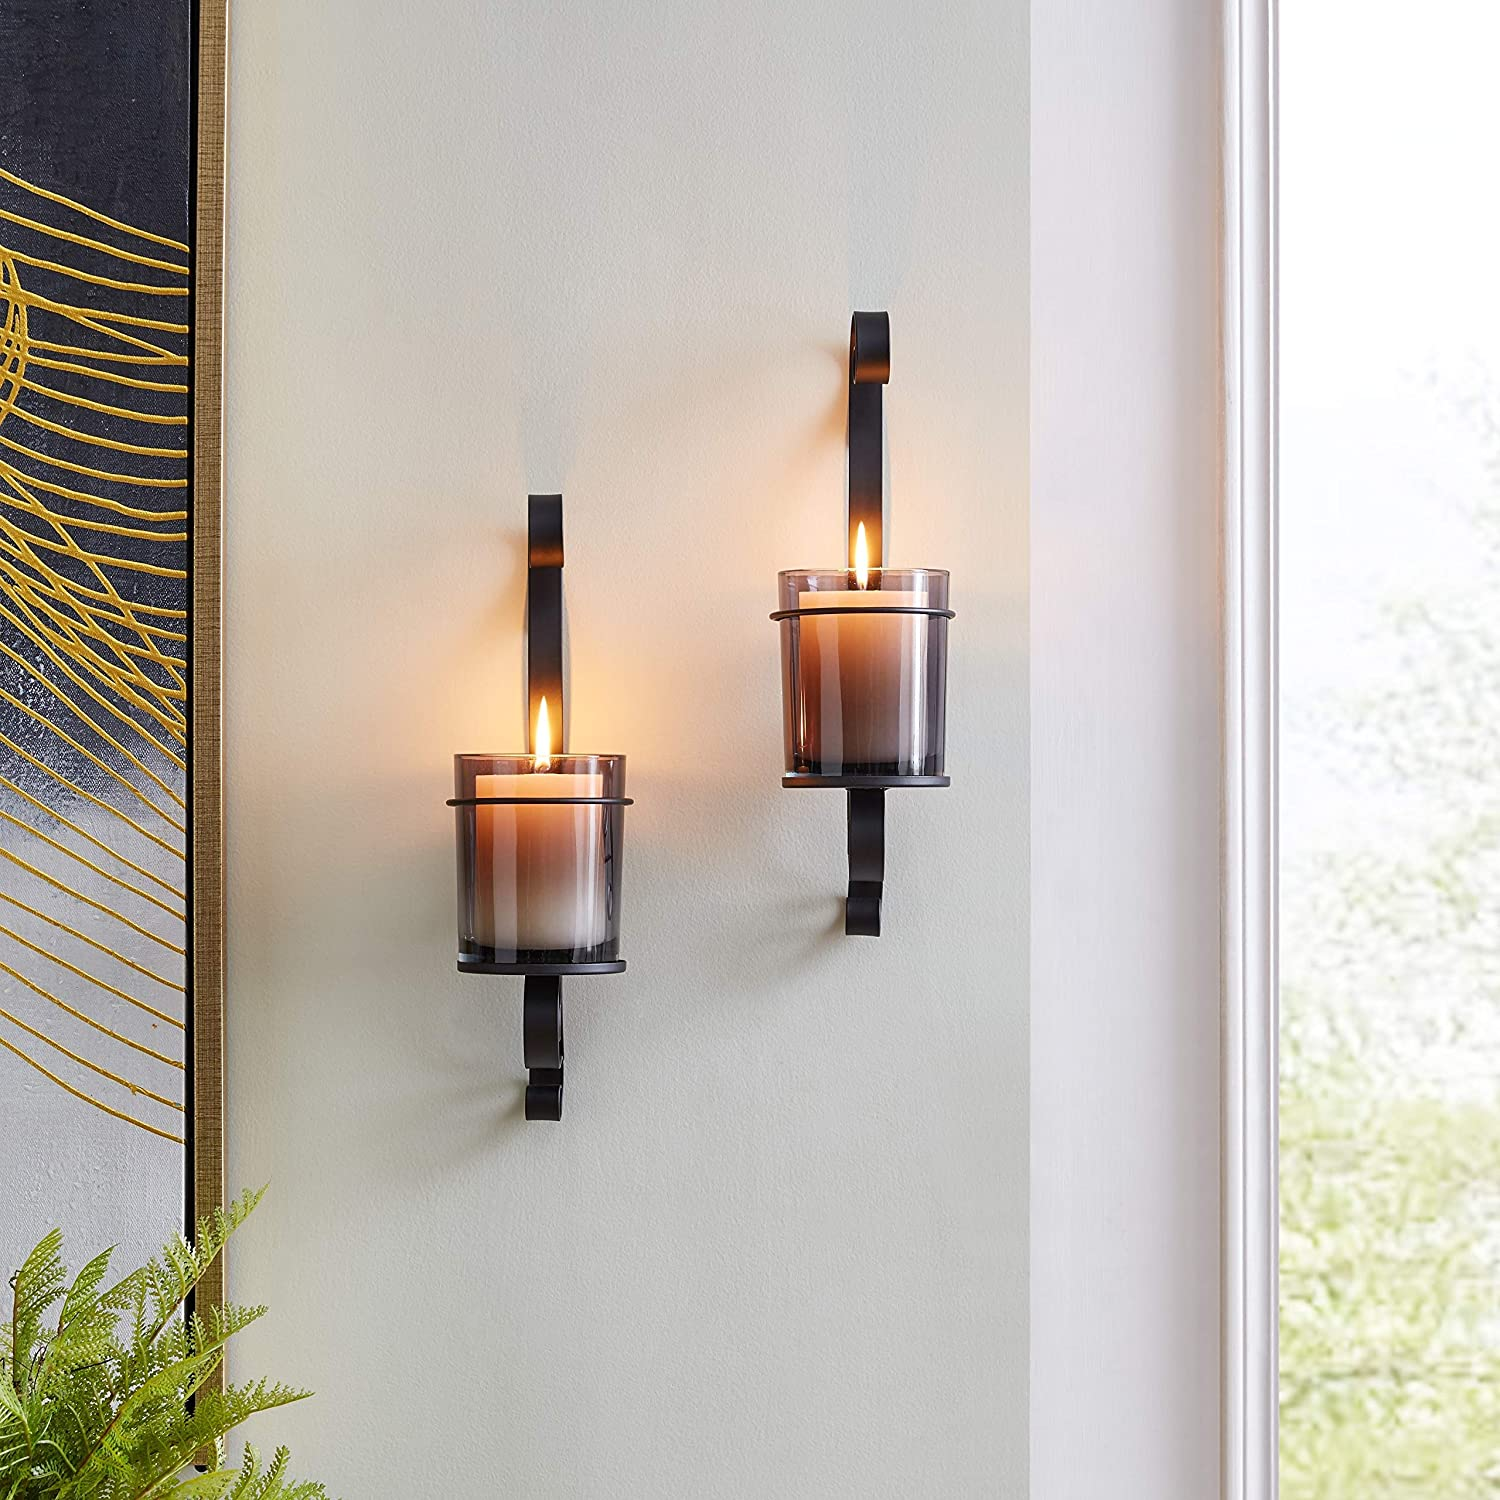 Vintage Black Wall Sconce Candle Holder Set 2 With Smoke Glass Hurricanes Modern Contemporary Metal Home Kitchen